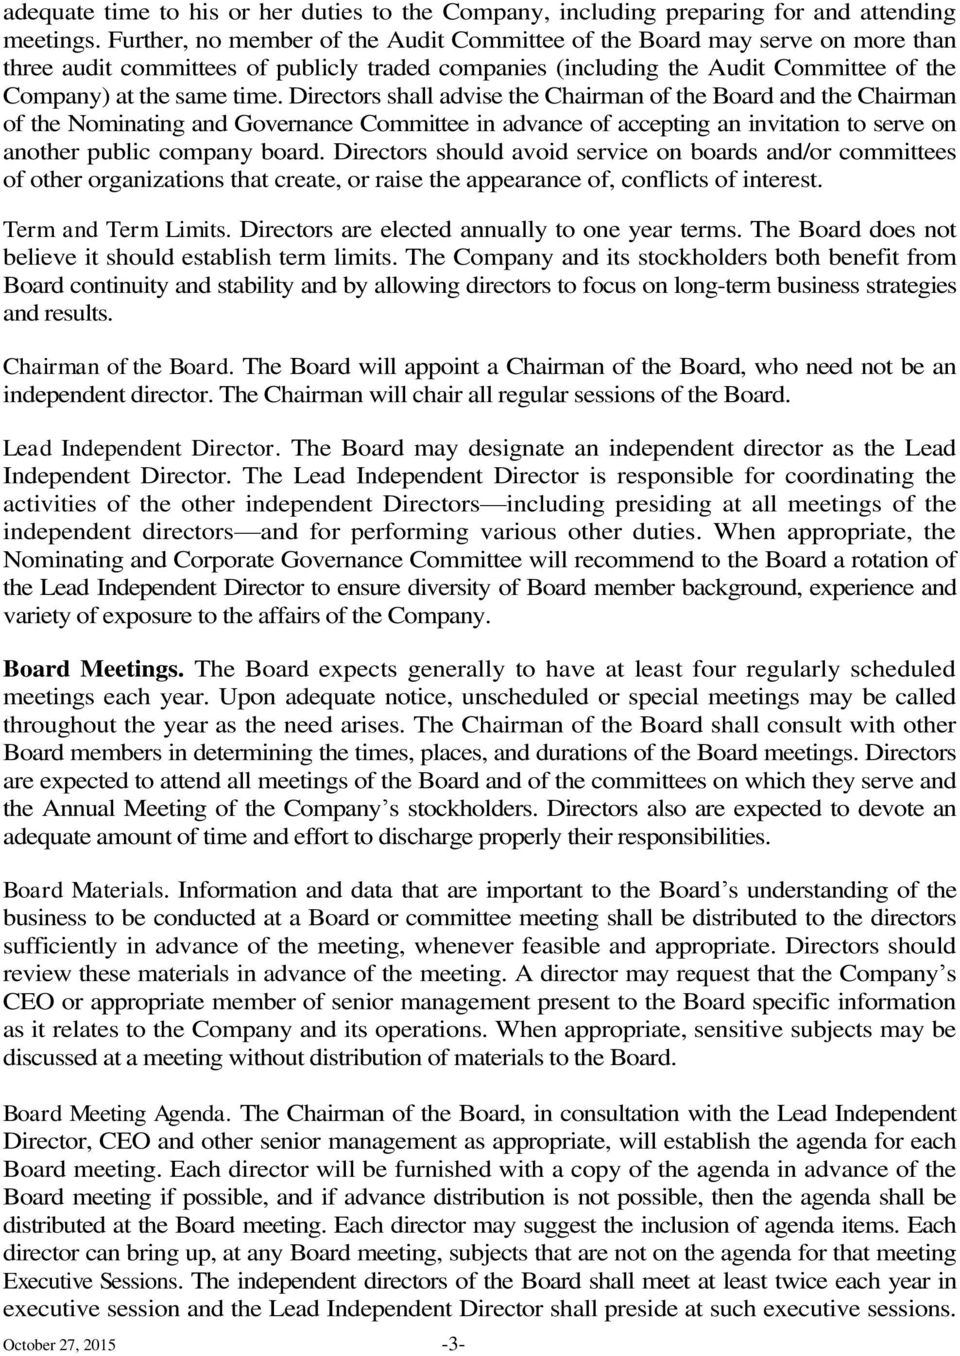 Directors shall advise the Chairman of the Board and the Chairman of the Nominating and Governance Committee in advance of accepting an invitation to serve on another public company board.